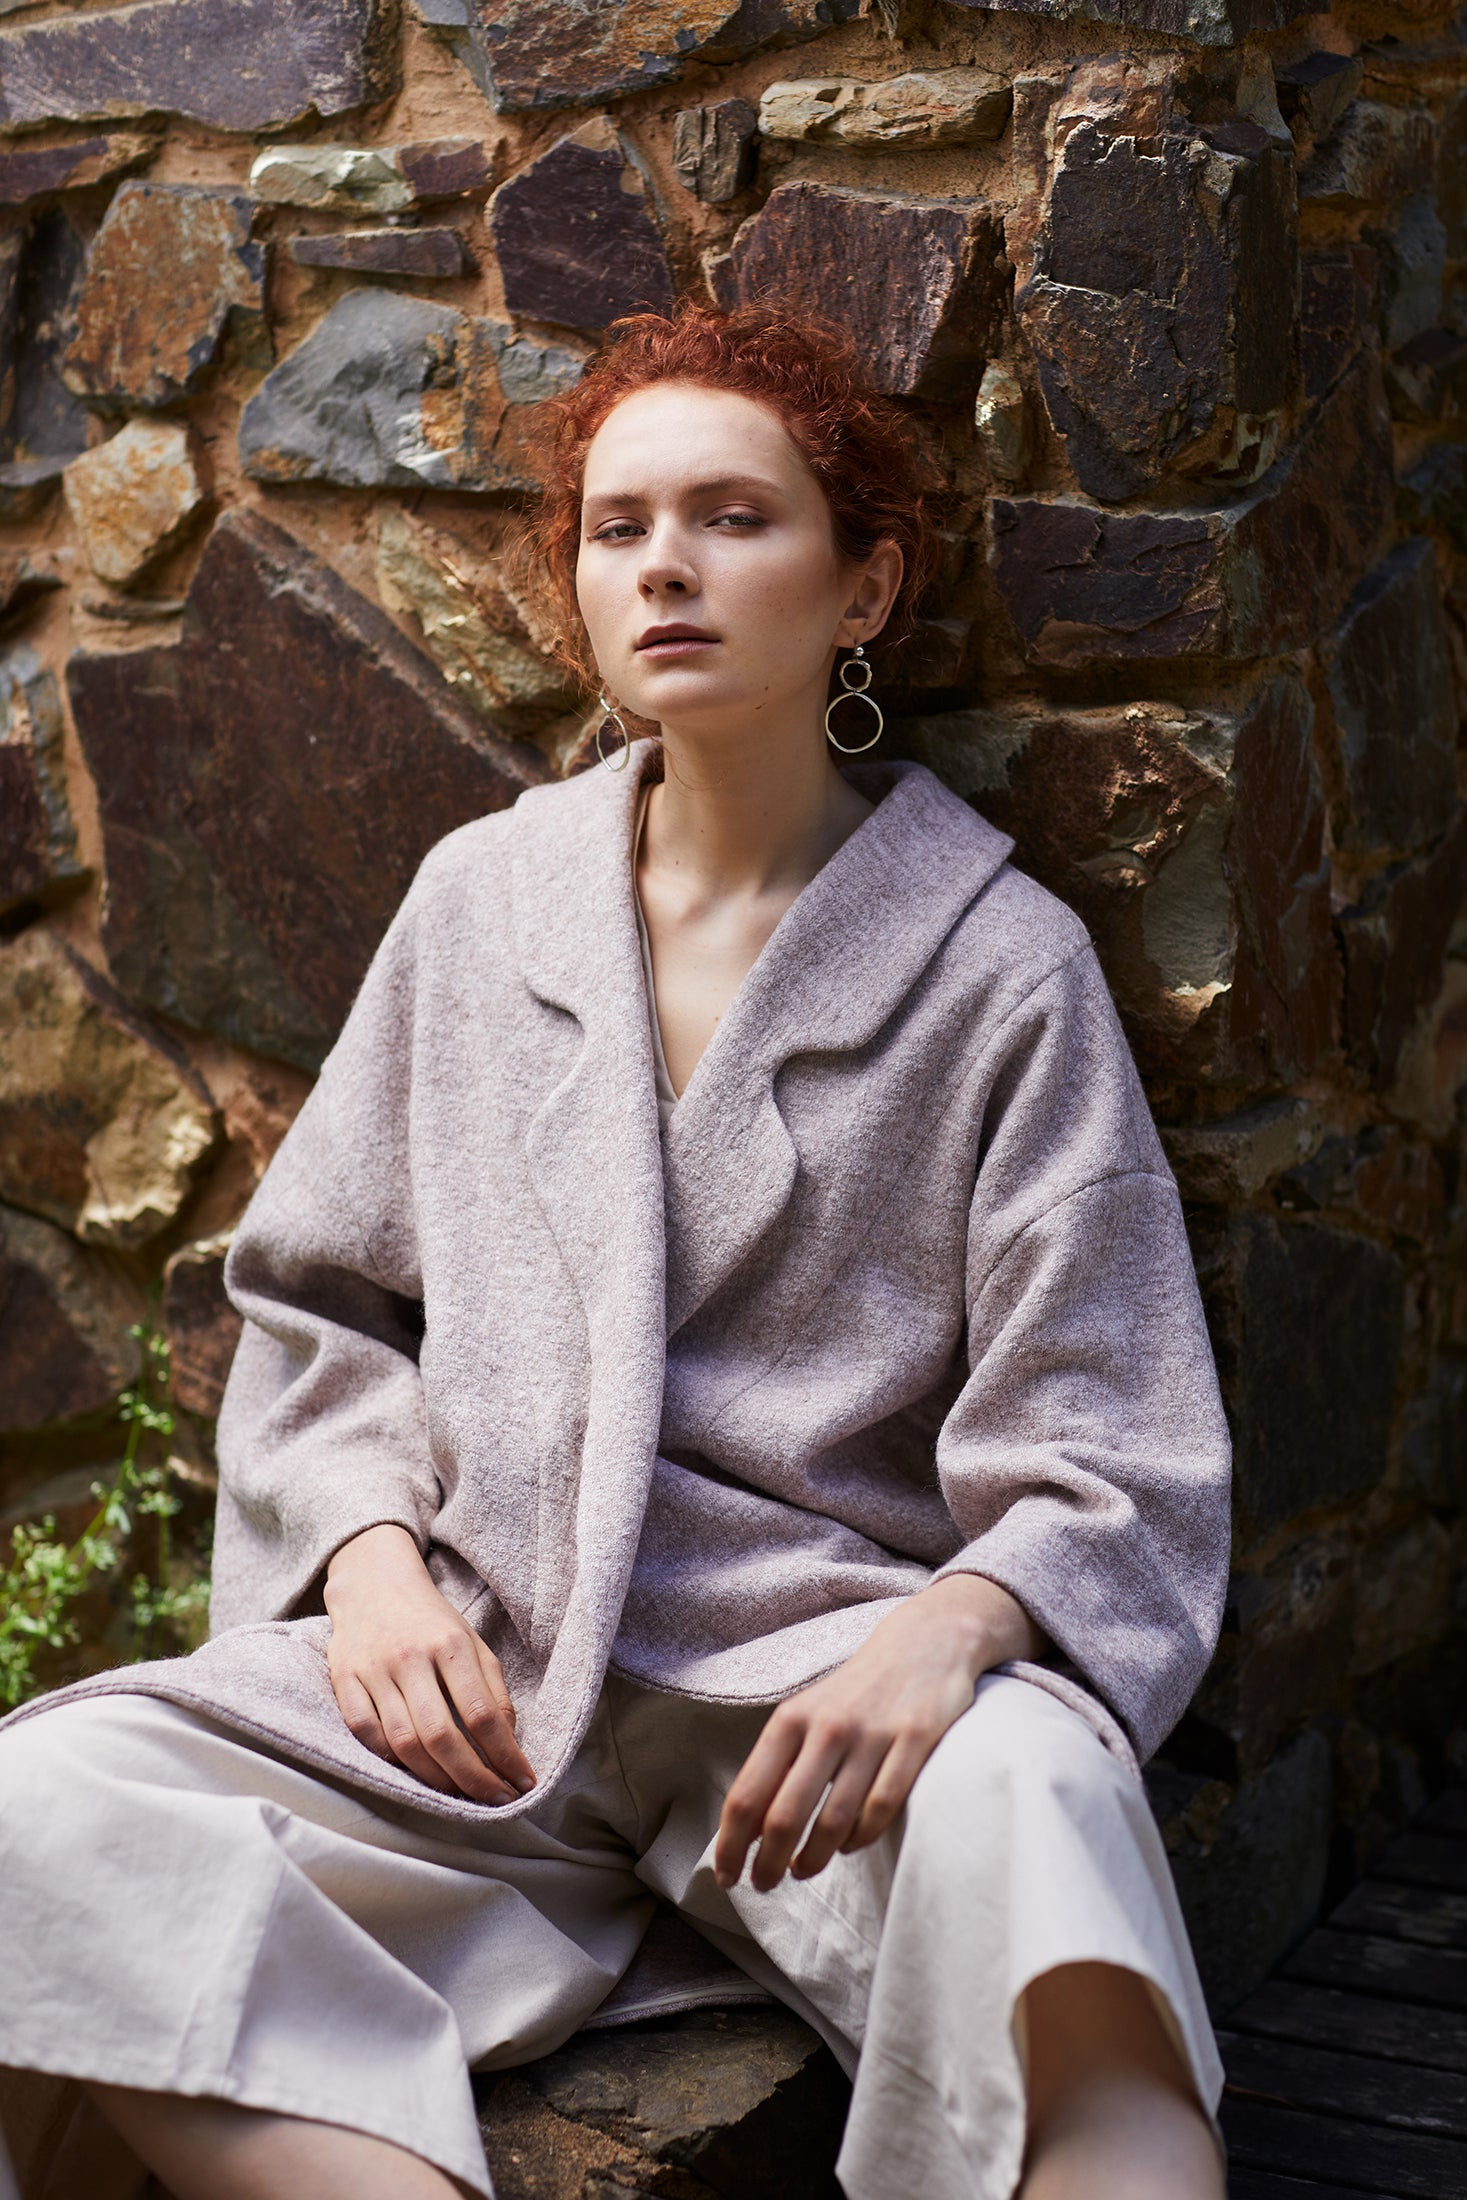 keegan AW19 Woodland Campaign Ethical Fashion Made in Melbourne Australia Cream Wool Coat Bluestone Wall